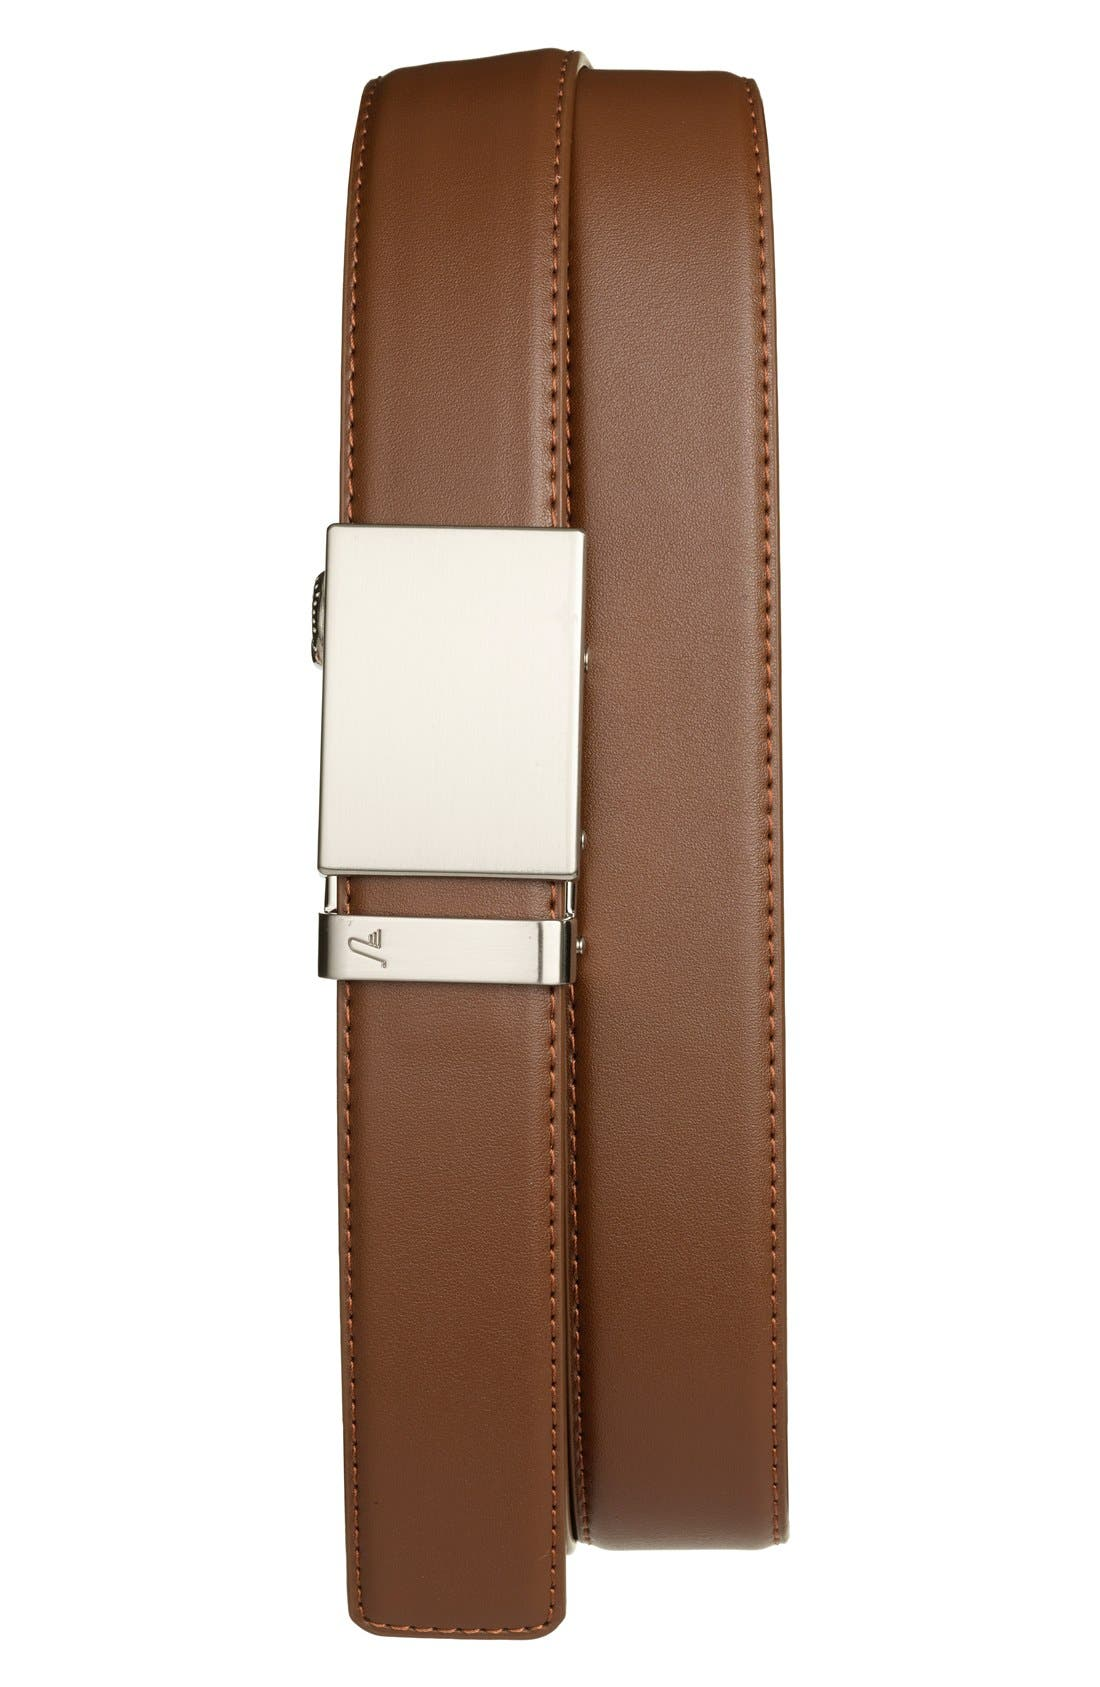 MISSION BELT Steel Leather Belt